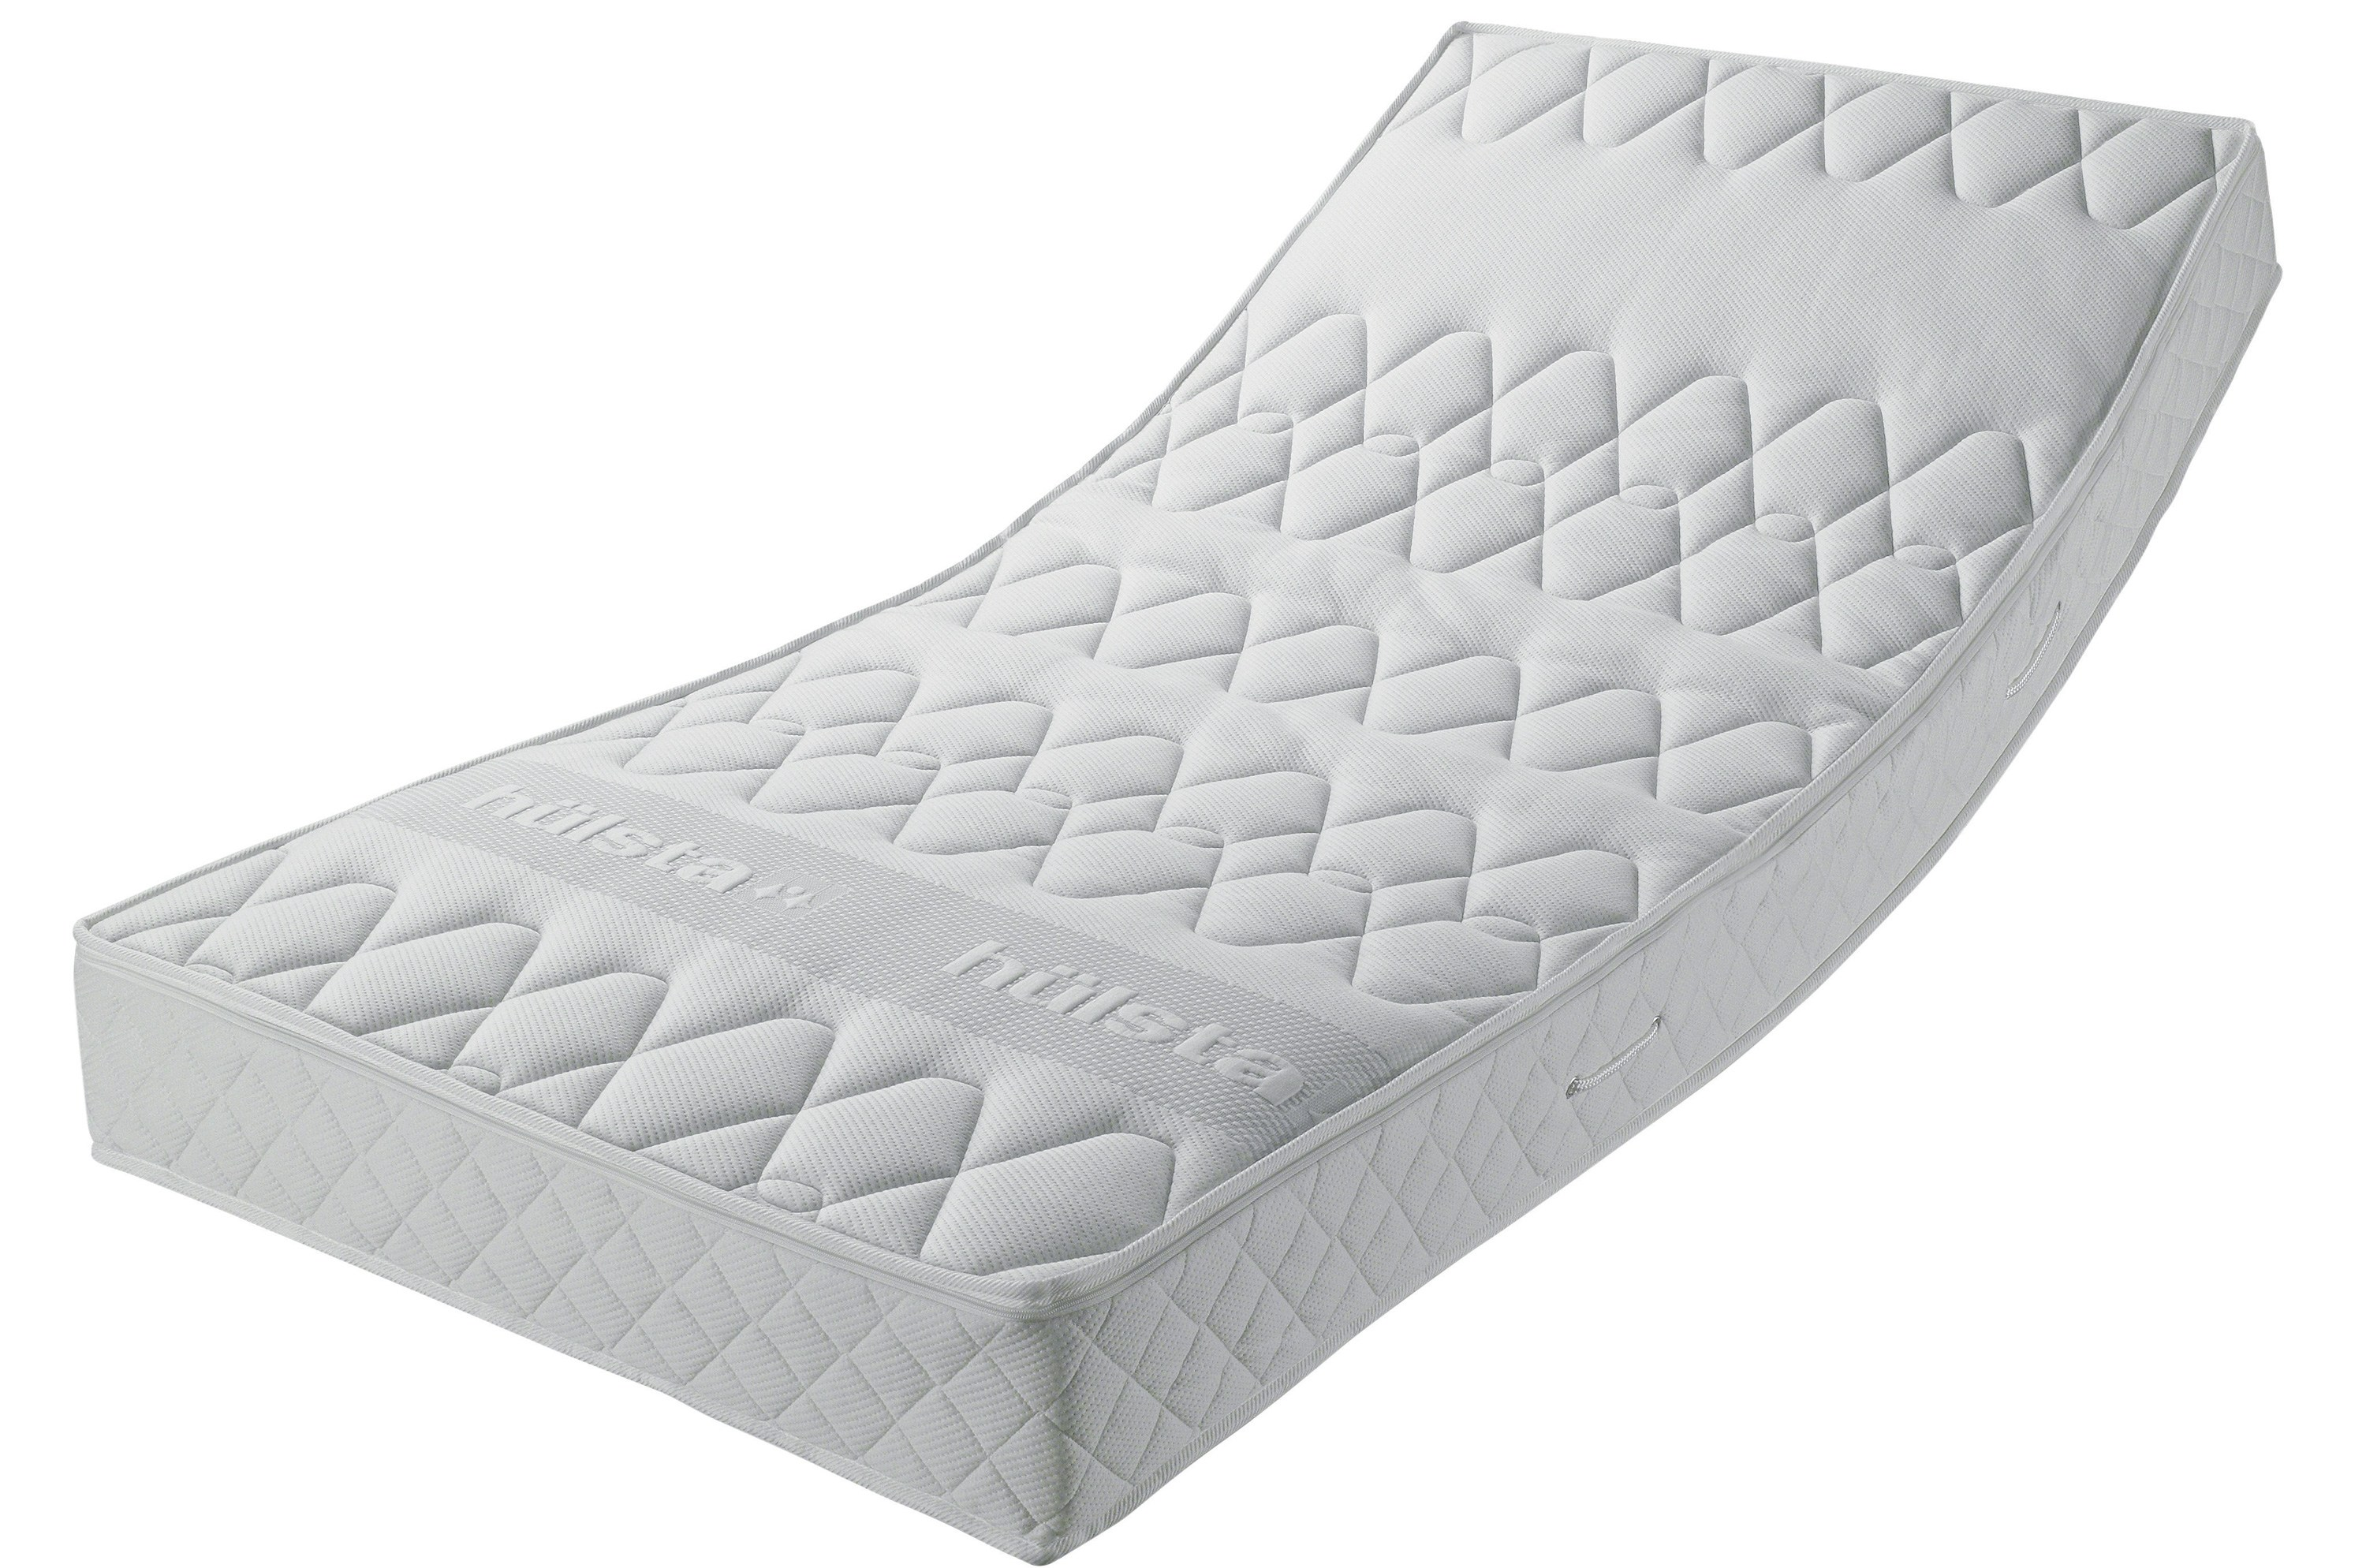 Polyurethane Foam Mattress : Packed springs polyurethane foam mattress top point